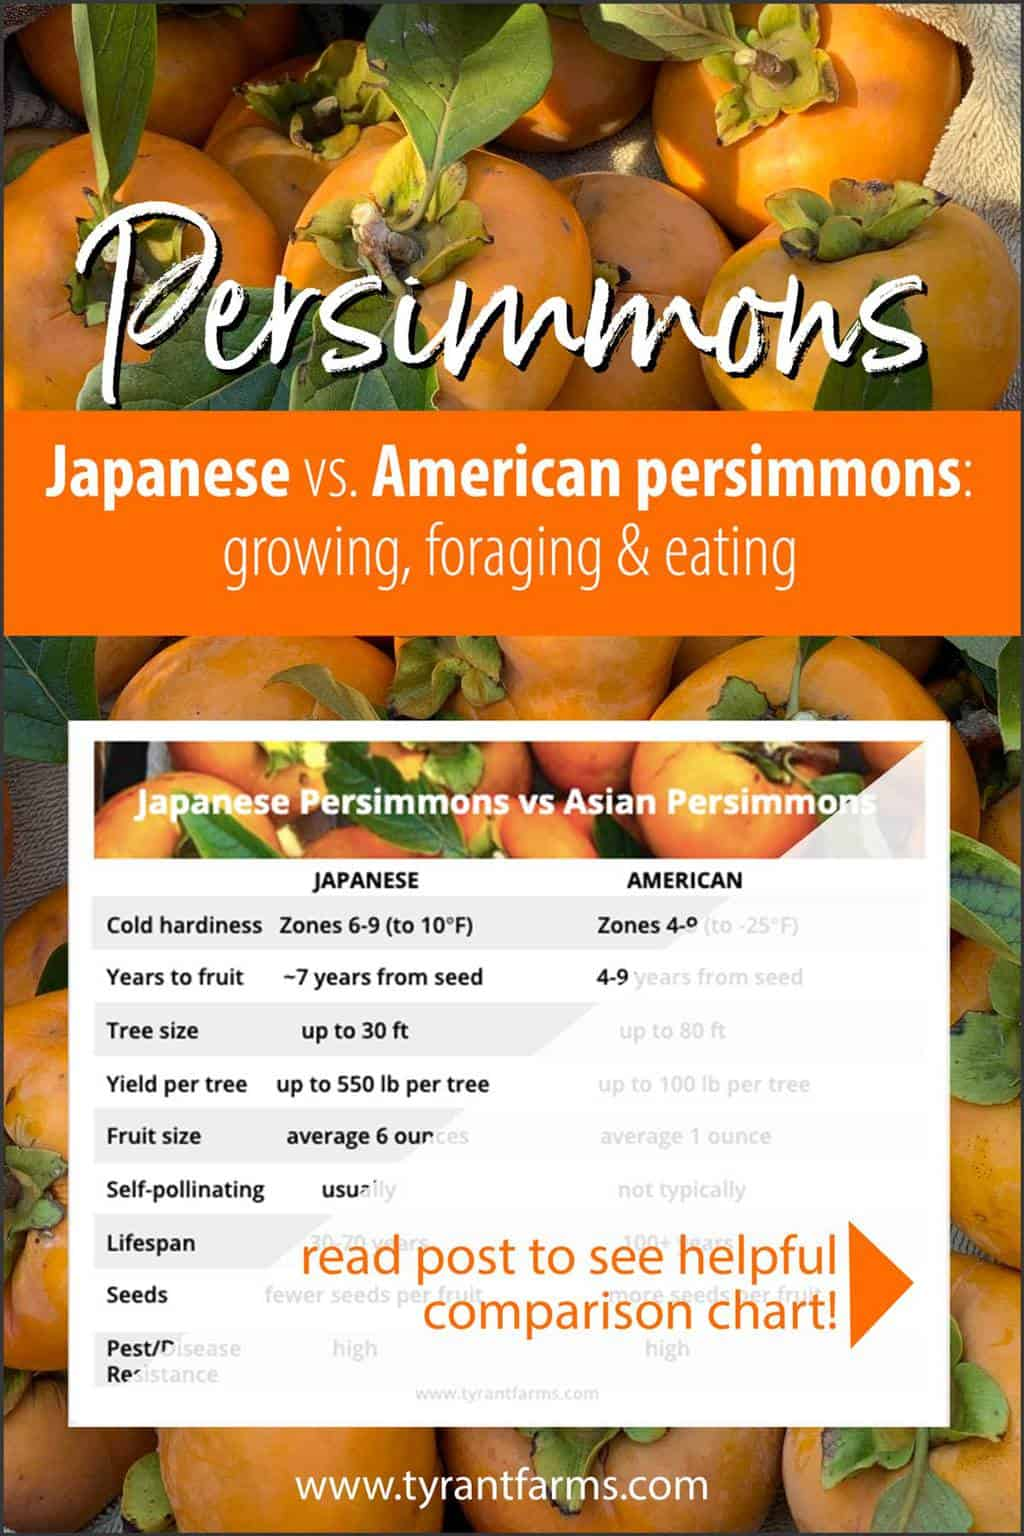 What's the difference between American persimmons and Japanese persimmons? Here's a side-by-side comparison chart to help you figure out which tree species is best for your garden, food forest, orchard, or farm. (See full comparison in article!) #tyrantfarms #foraging #fallforaging #foodforest #permaculture #ediblelandscaping #americanpersimmon #japanesepersimmon